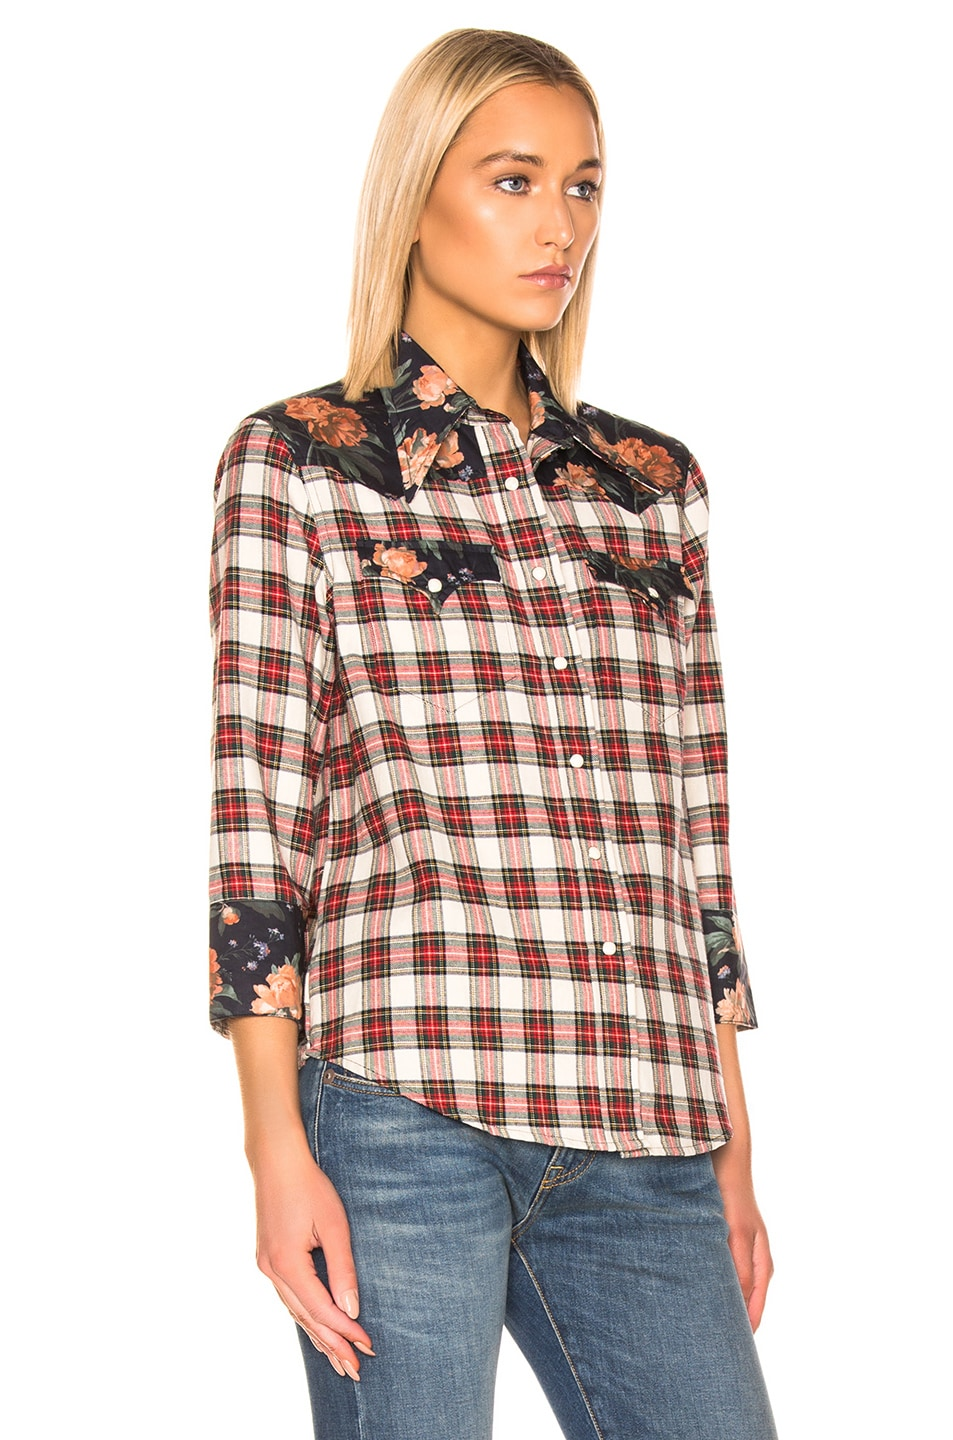 Image 2 of R13 Exaggerated Collar Cowboy Shirt in Ecru & Black Floral